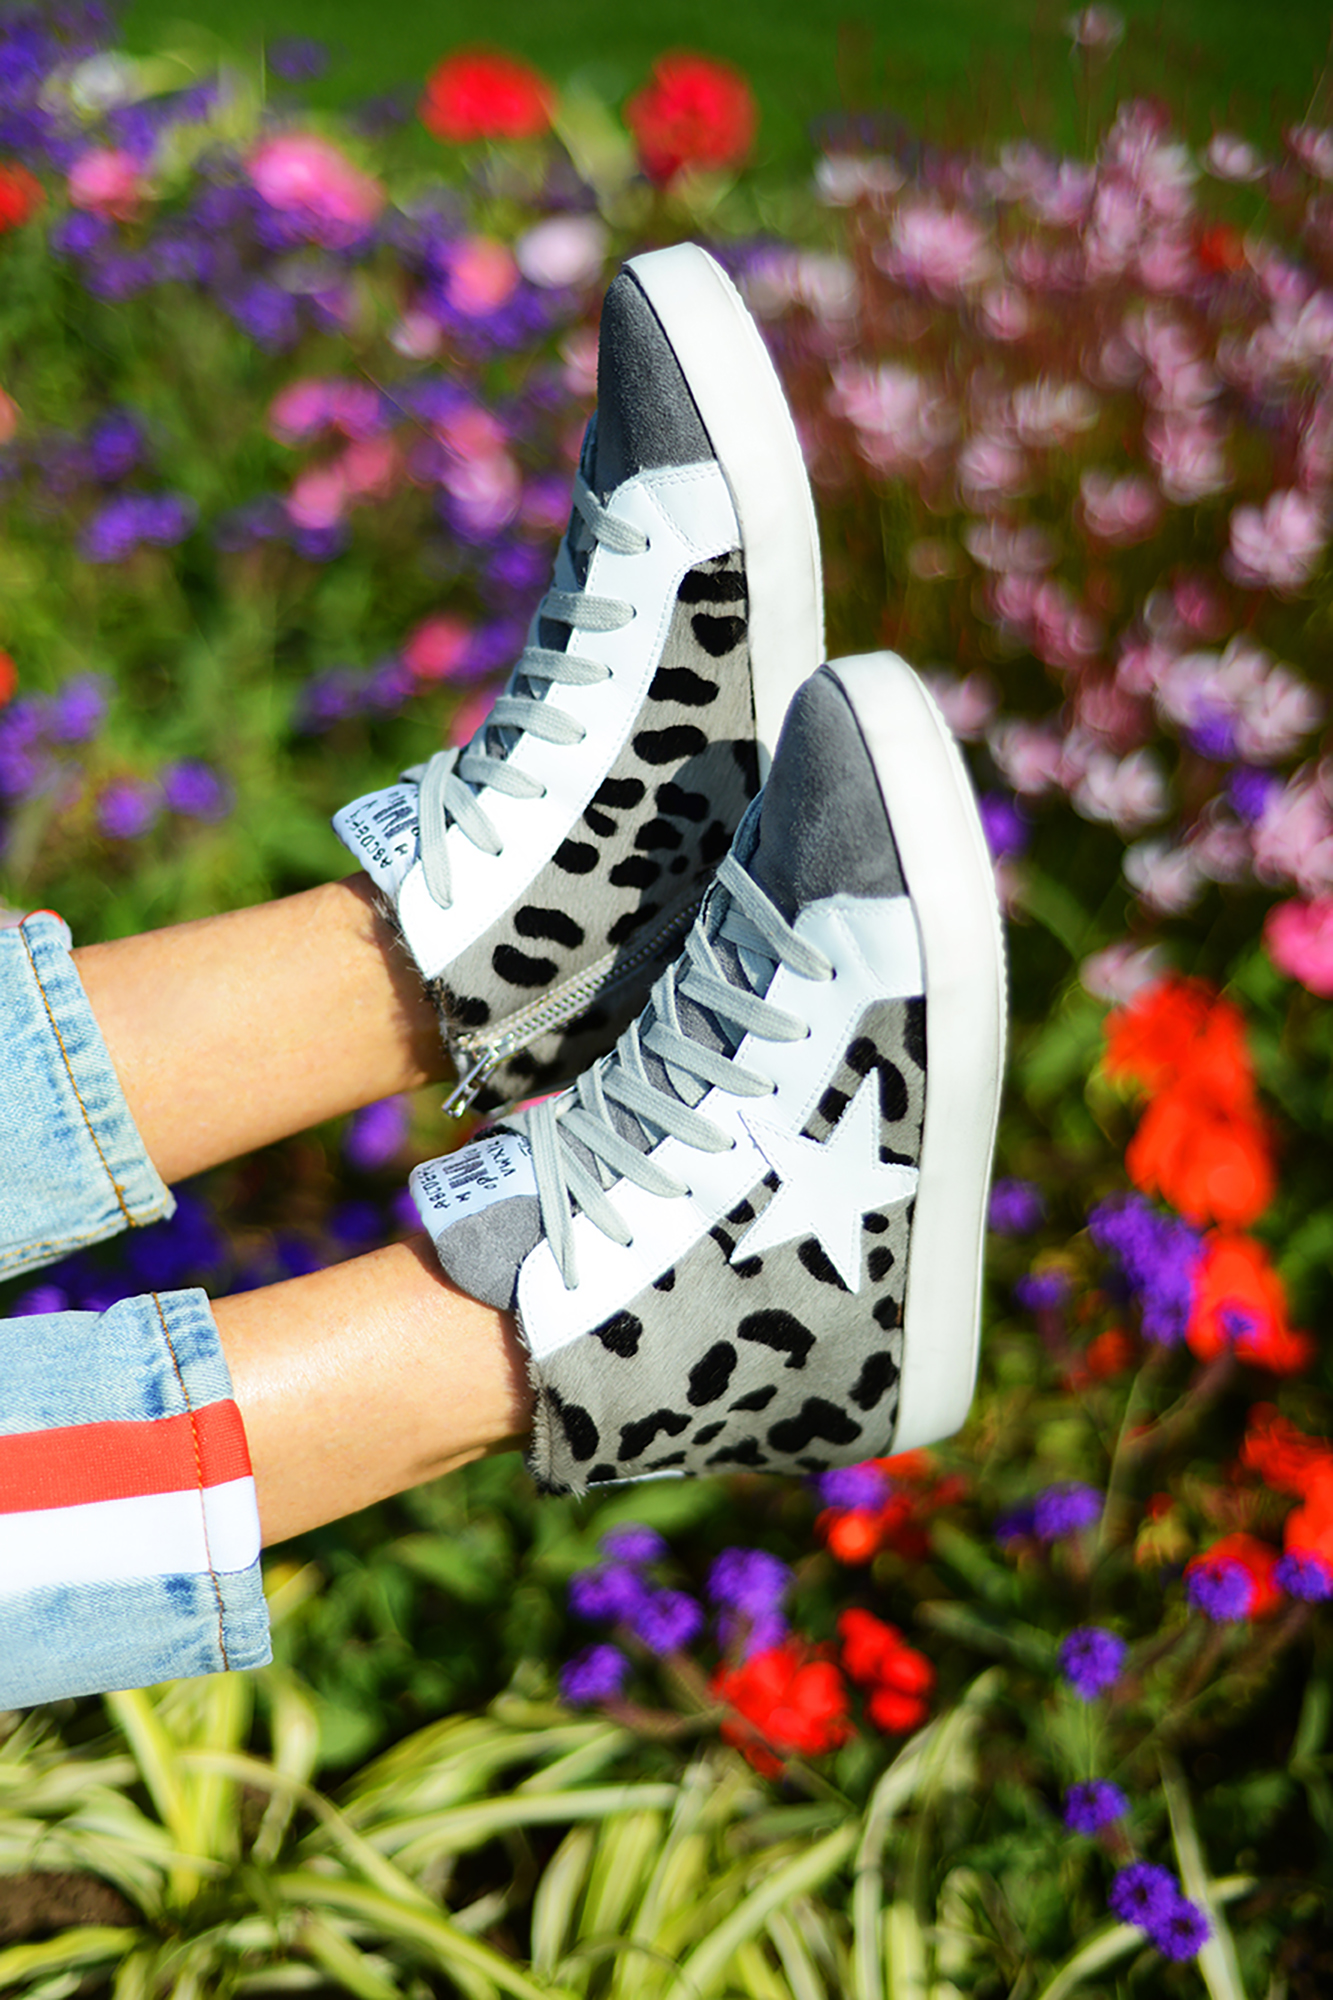 Grace Delnevo Fashion Photographer based in the cotswolds Keith Scarrott Shoes